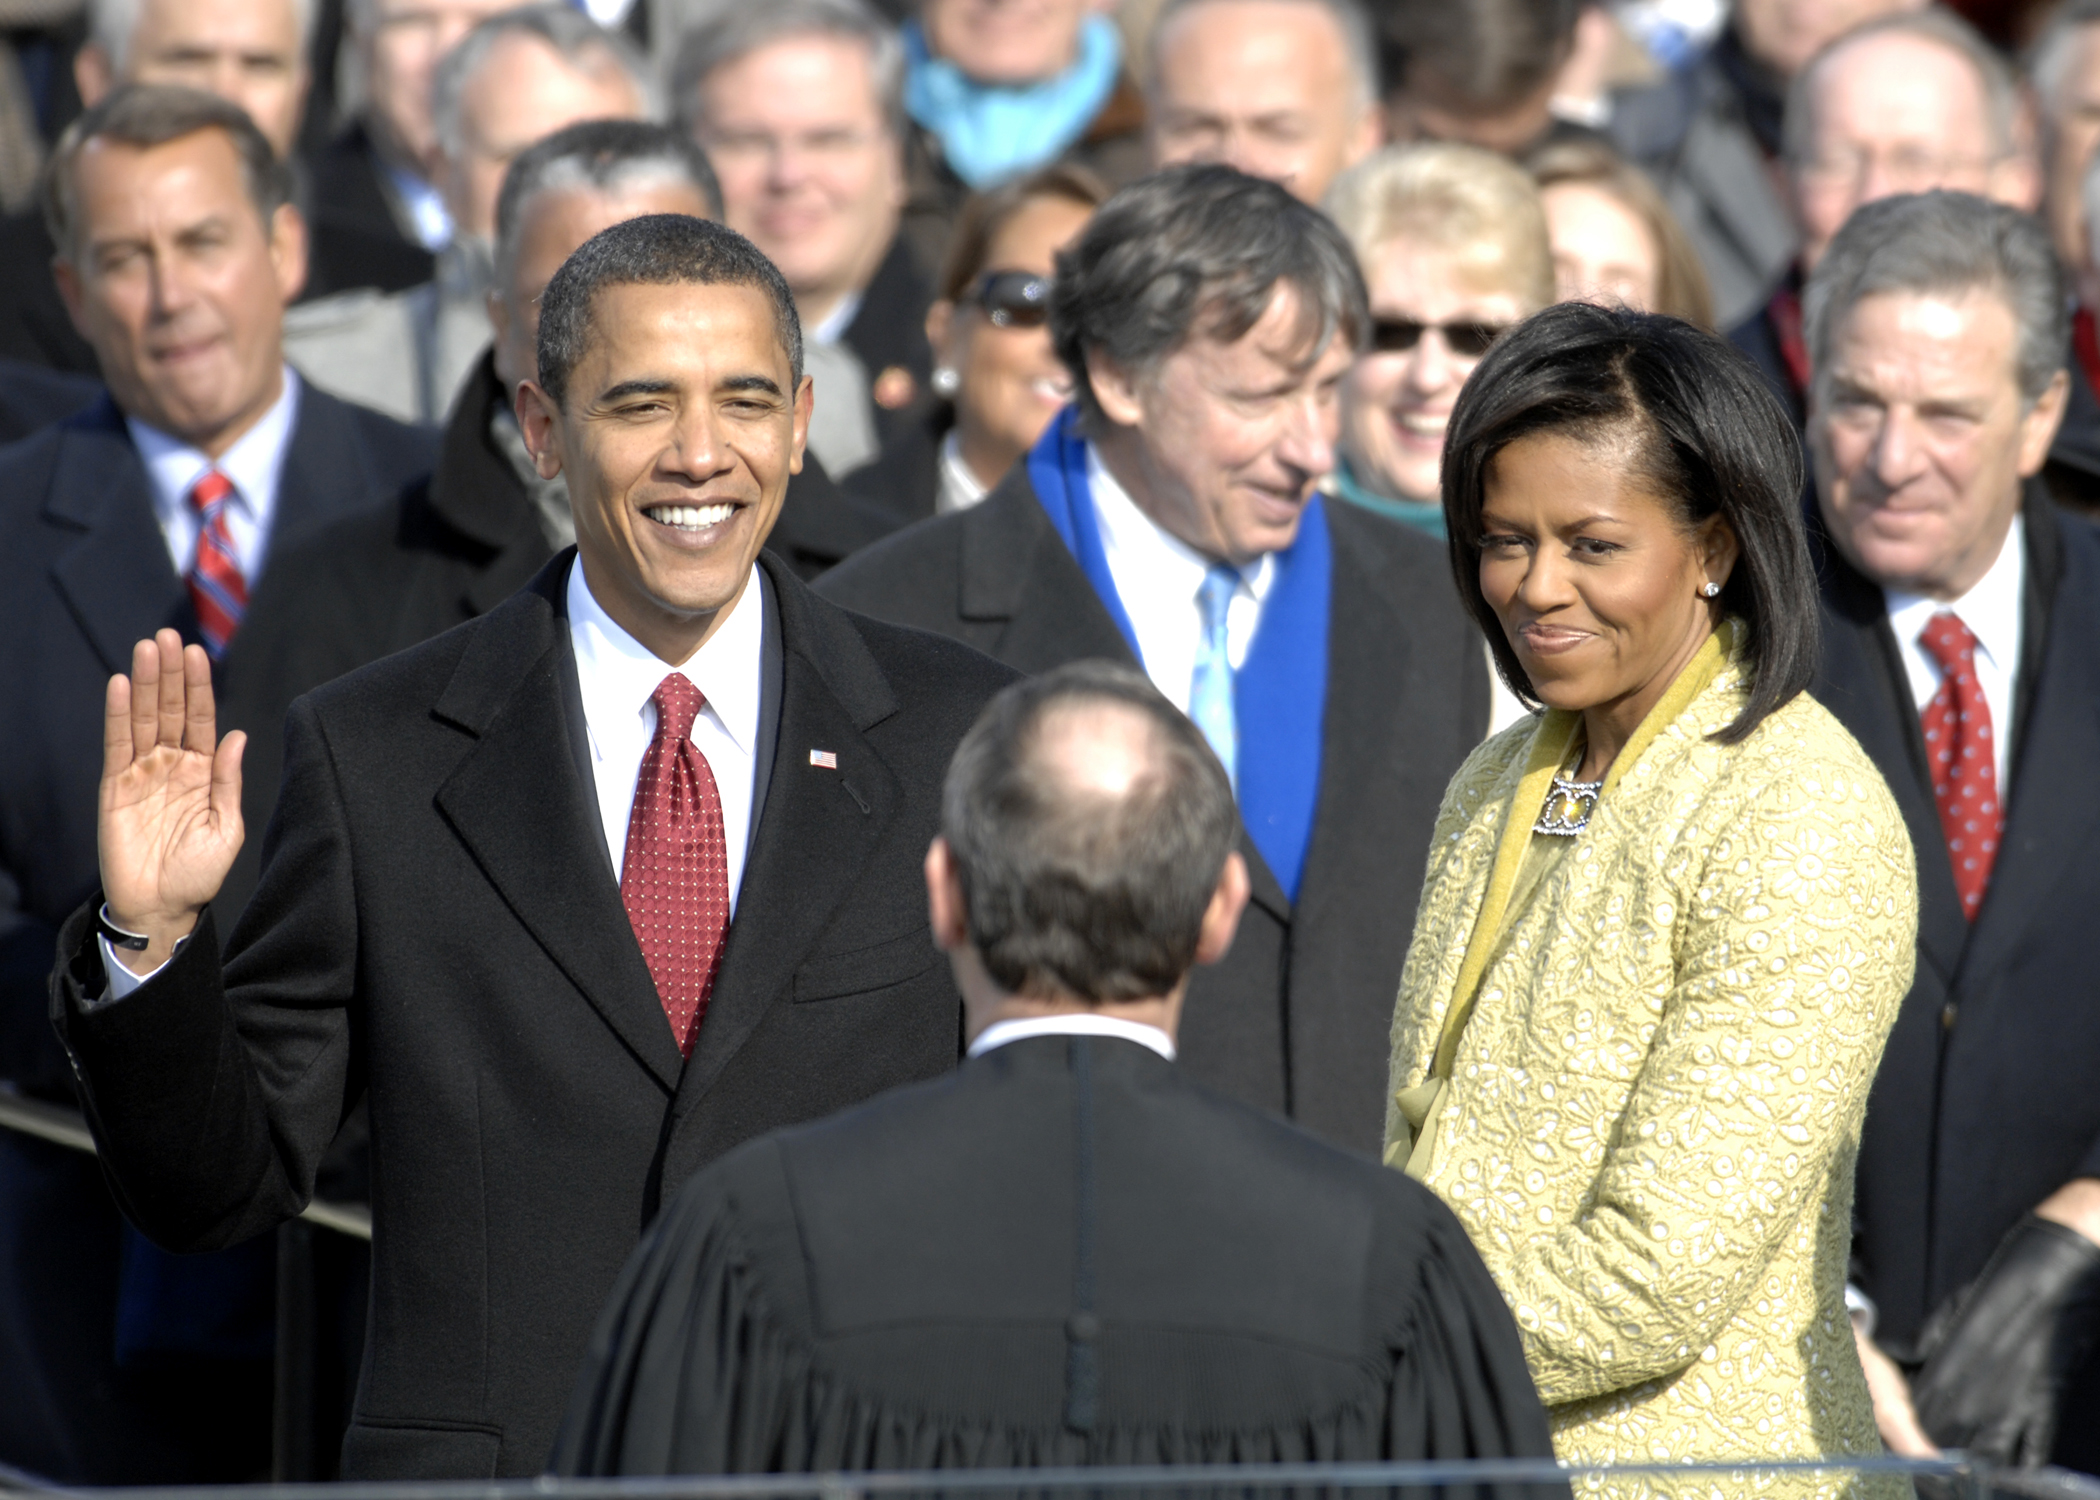 US_President_Barack_Obama_taking_his_Oath_of_Office_-_2009Jan20.jpg